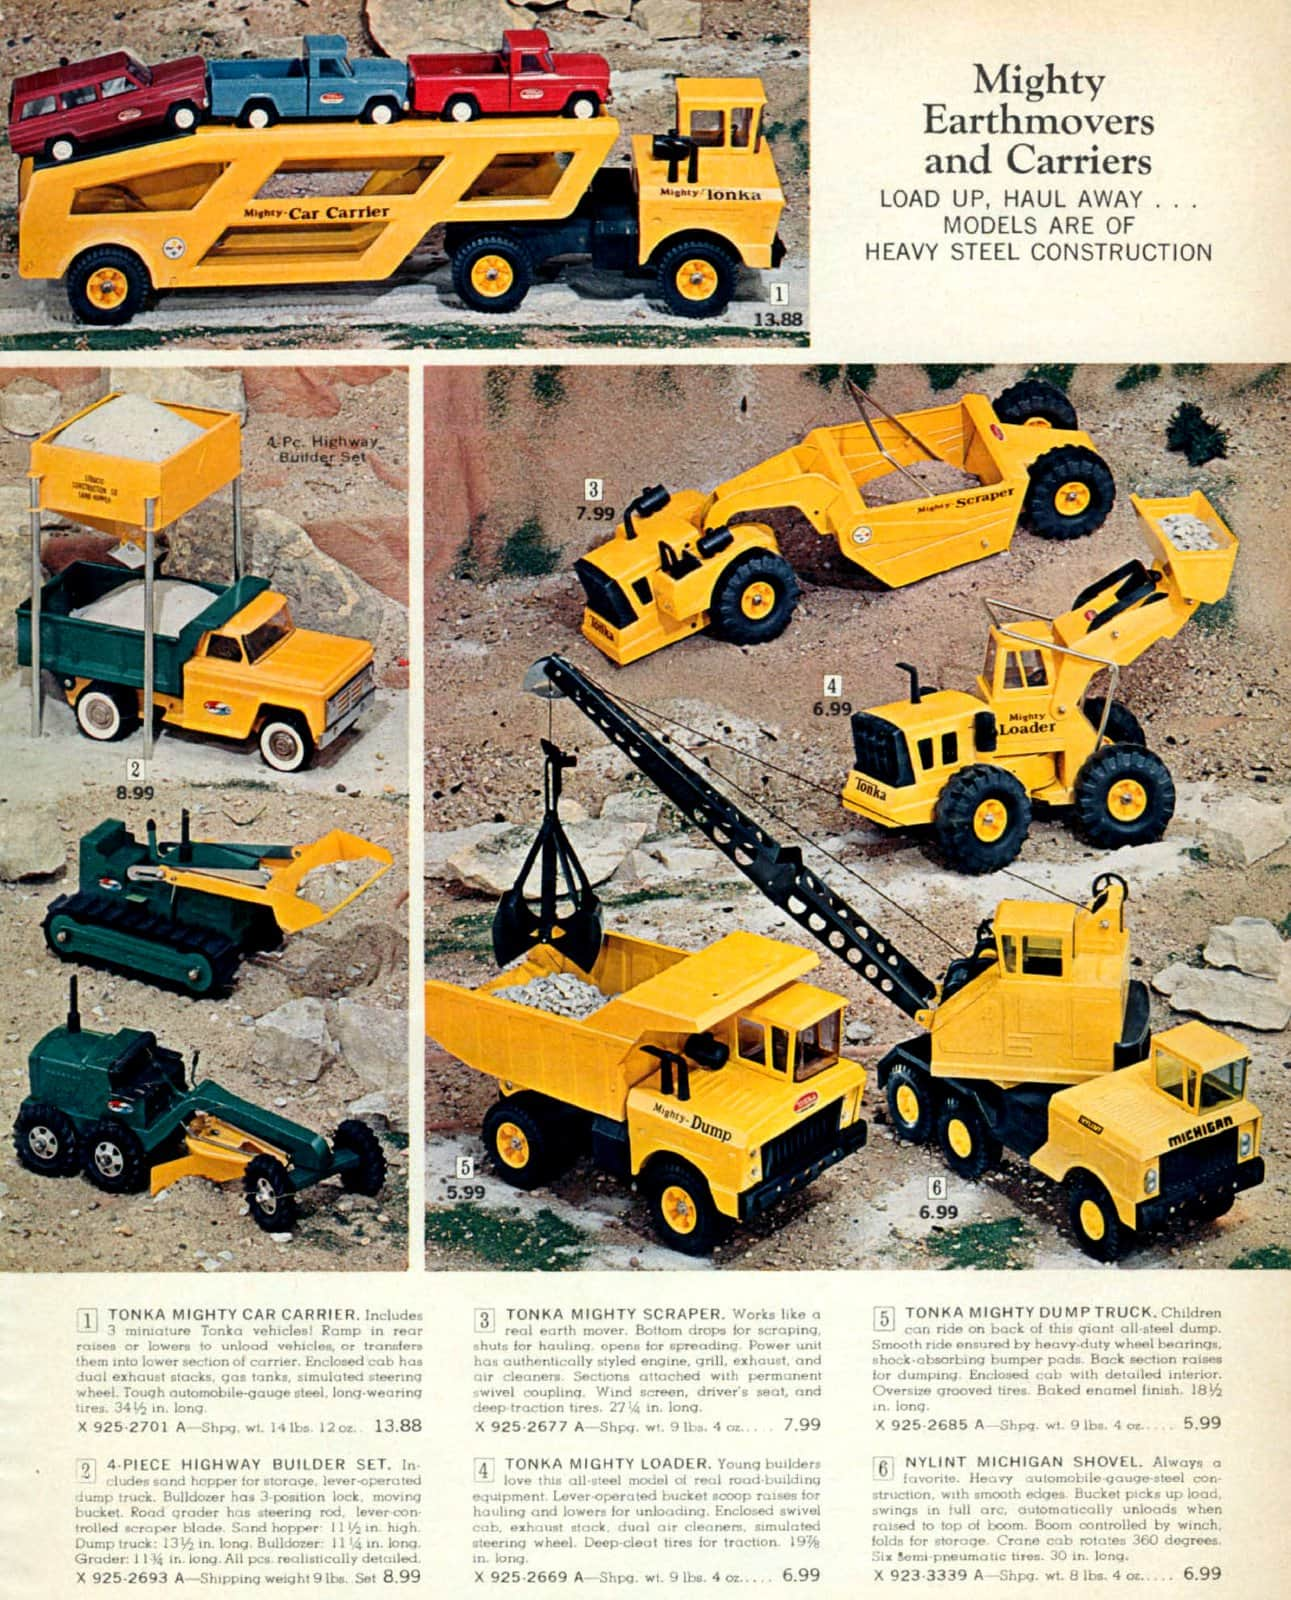 Vintage Tonka truck toys from 1967 (1)